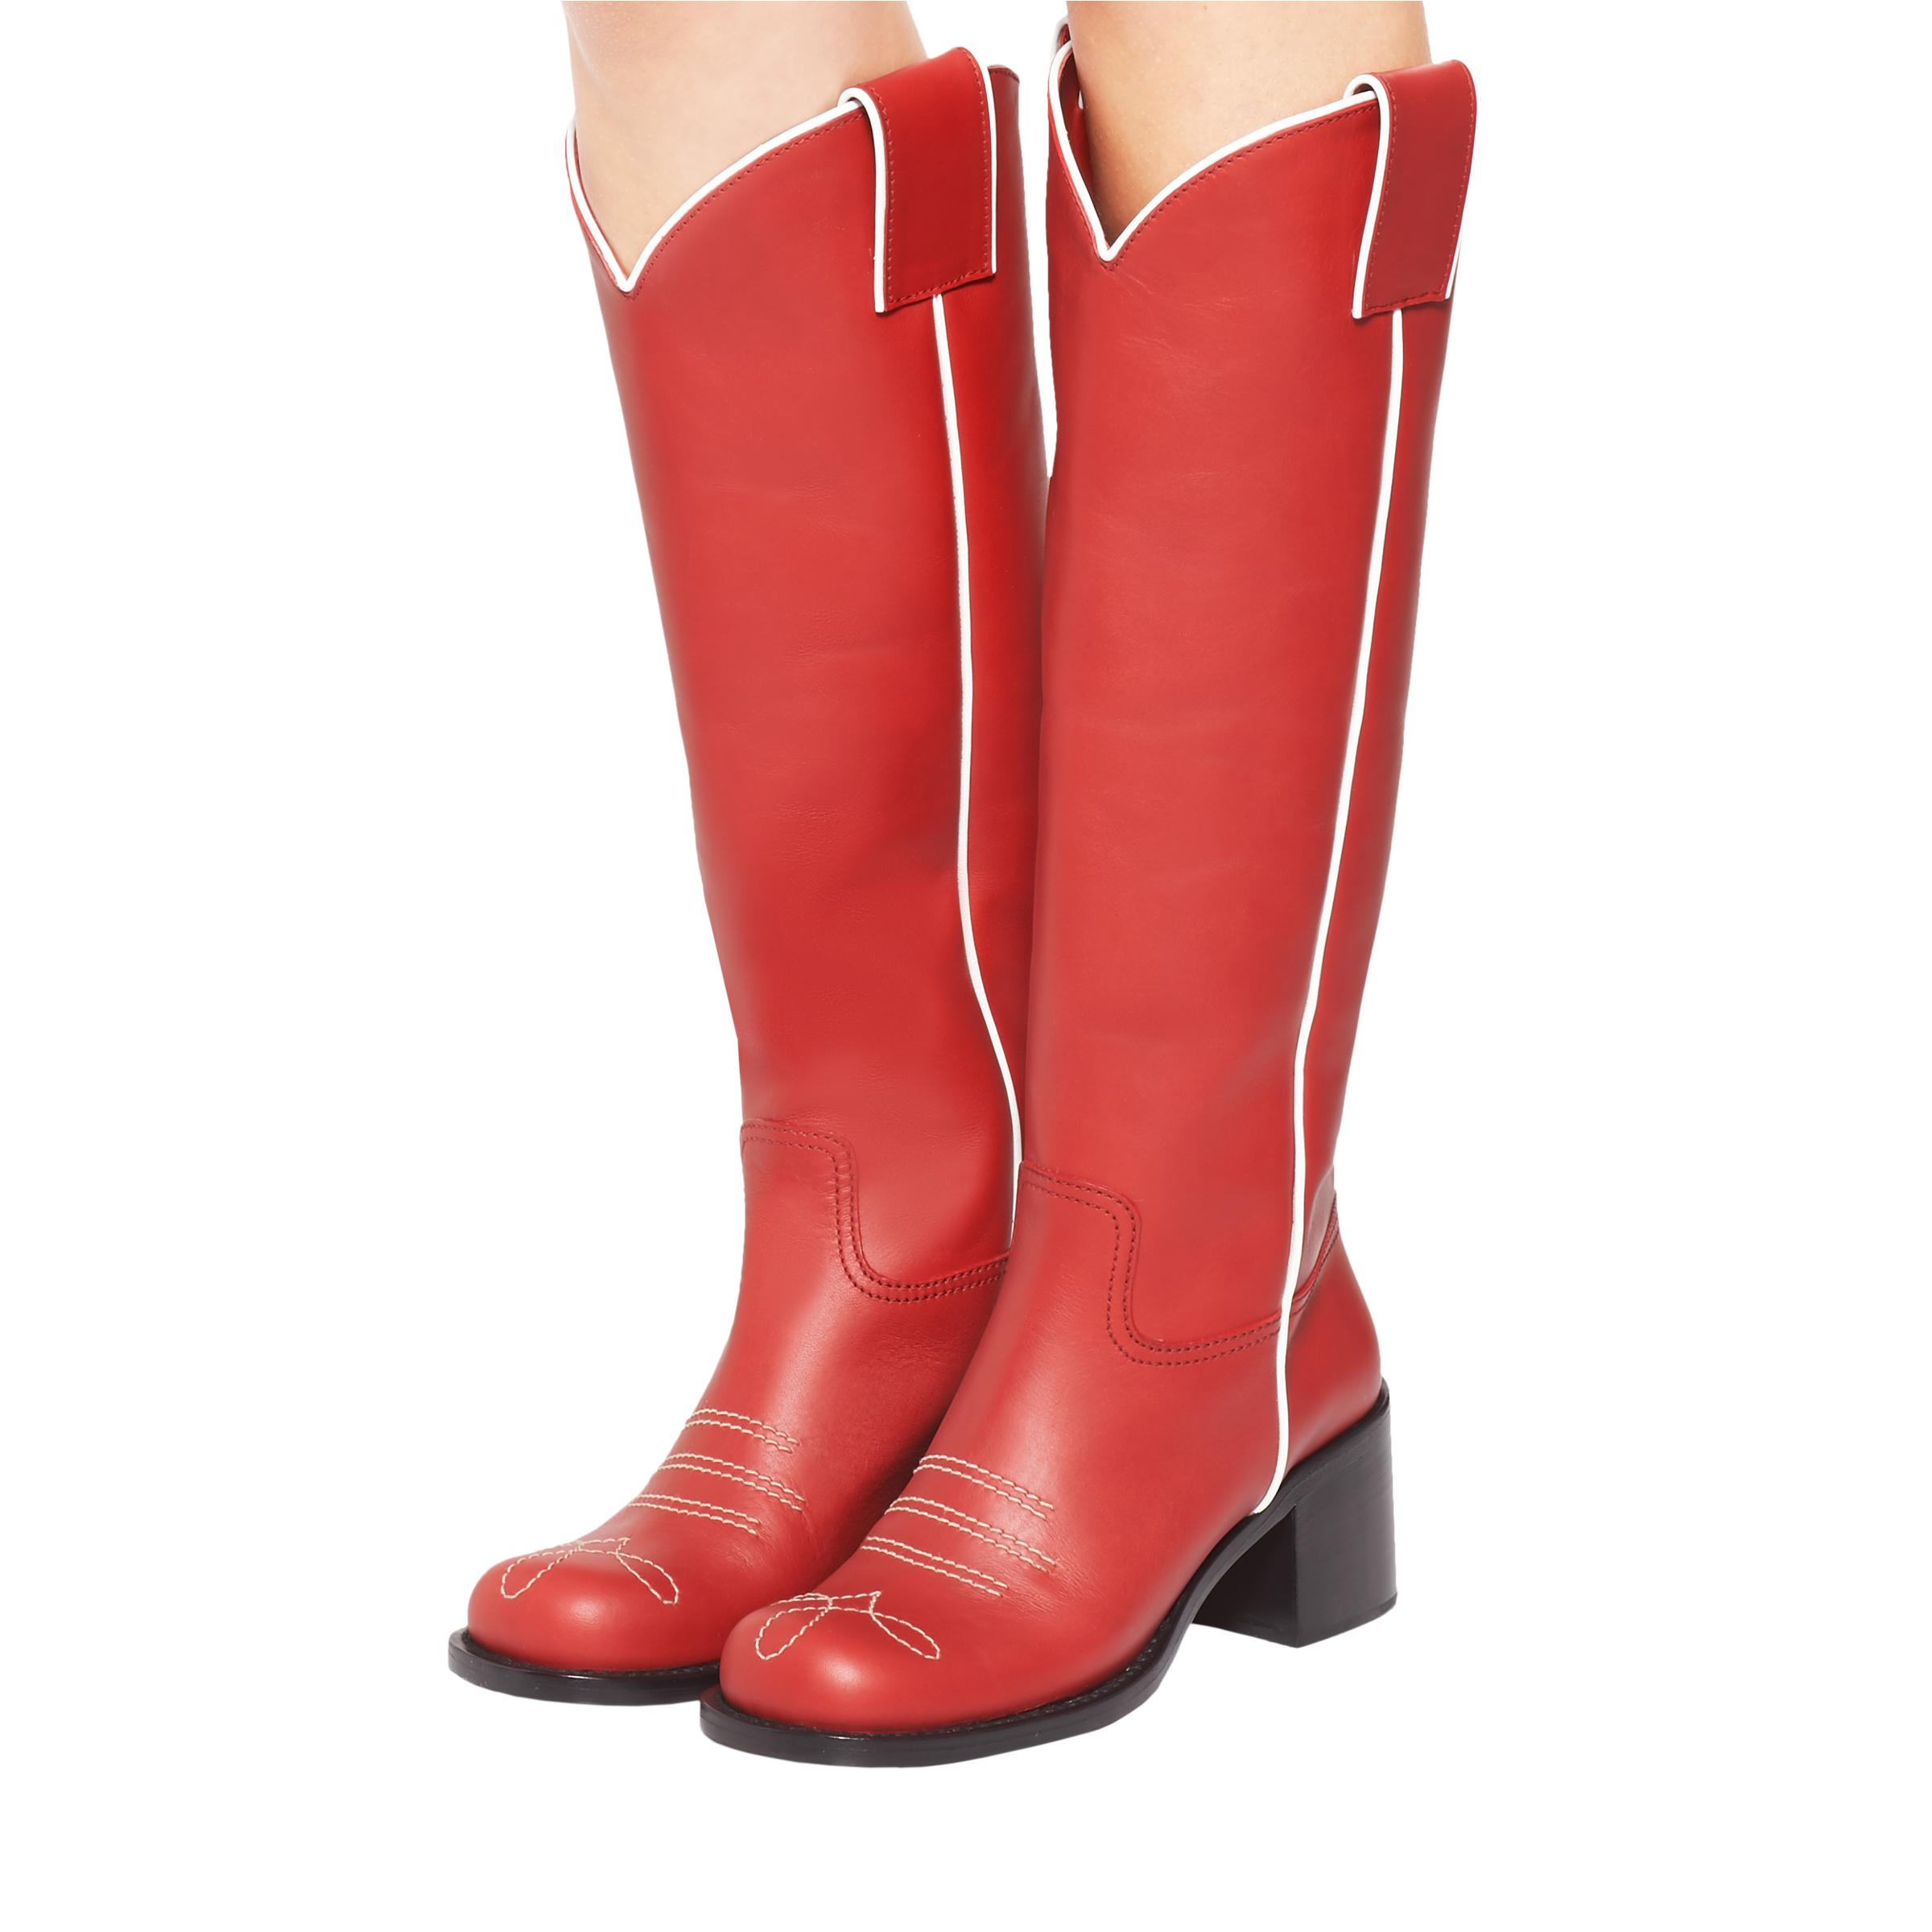 Leather Boots Women Ruby Red/white 3